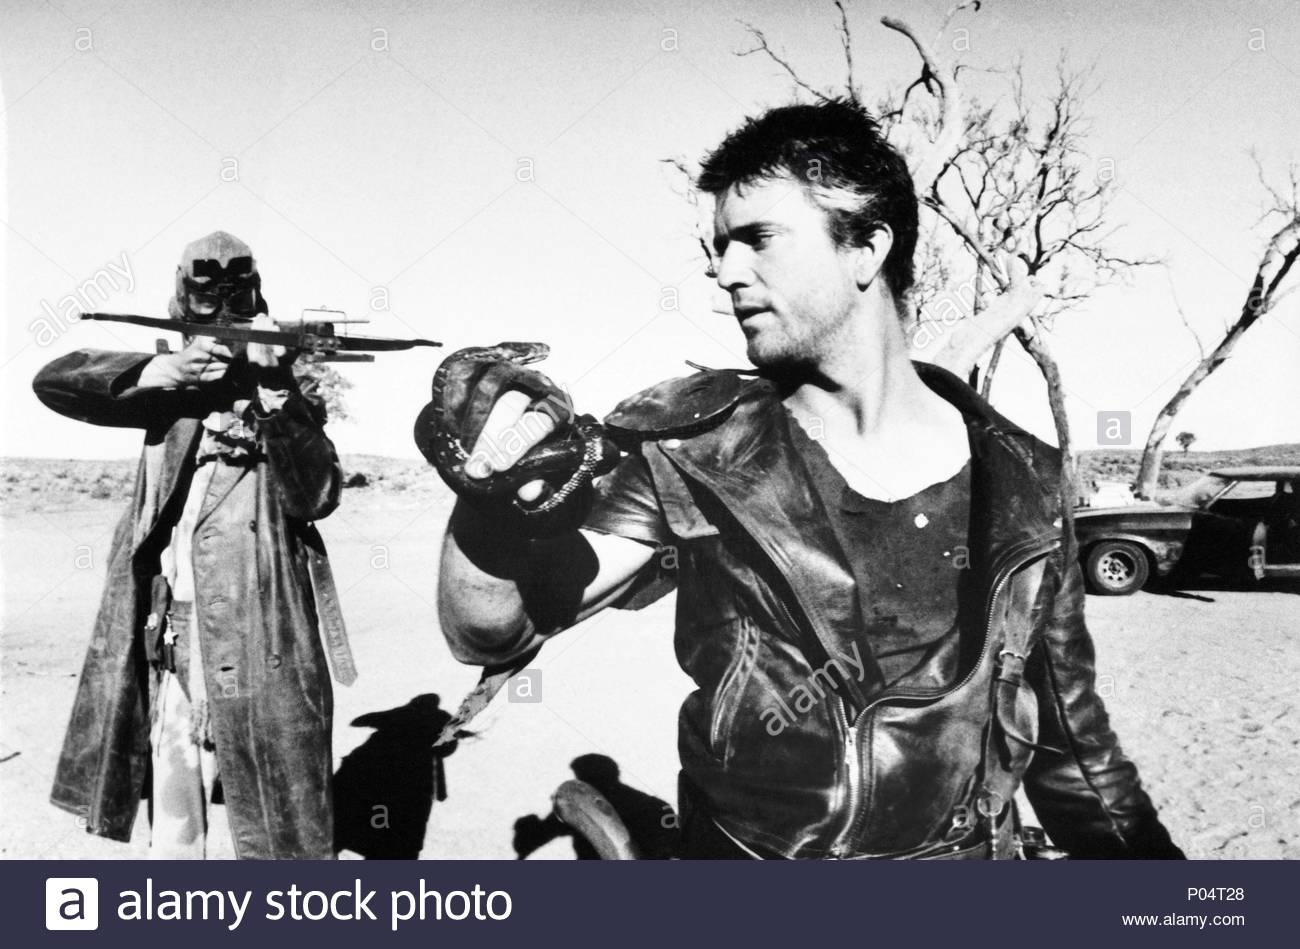 mad max black and white stock photos images alamy